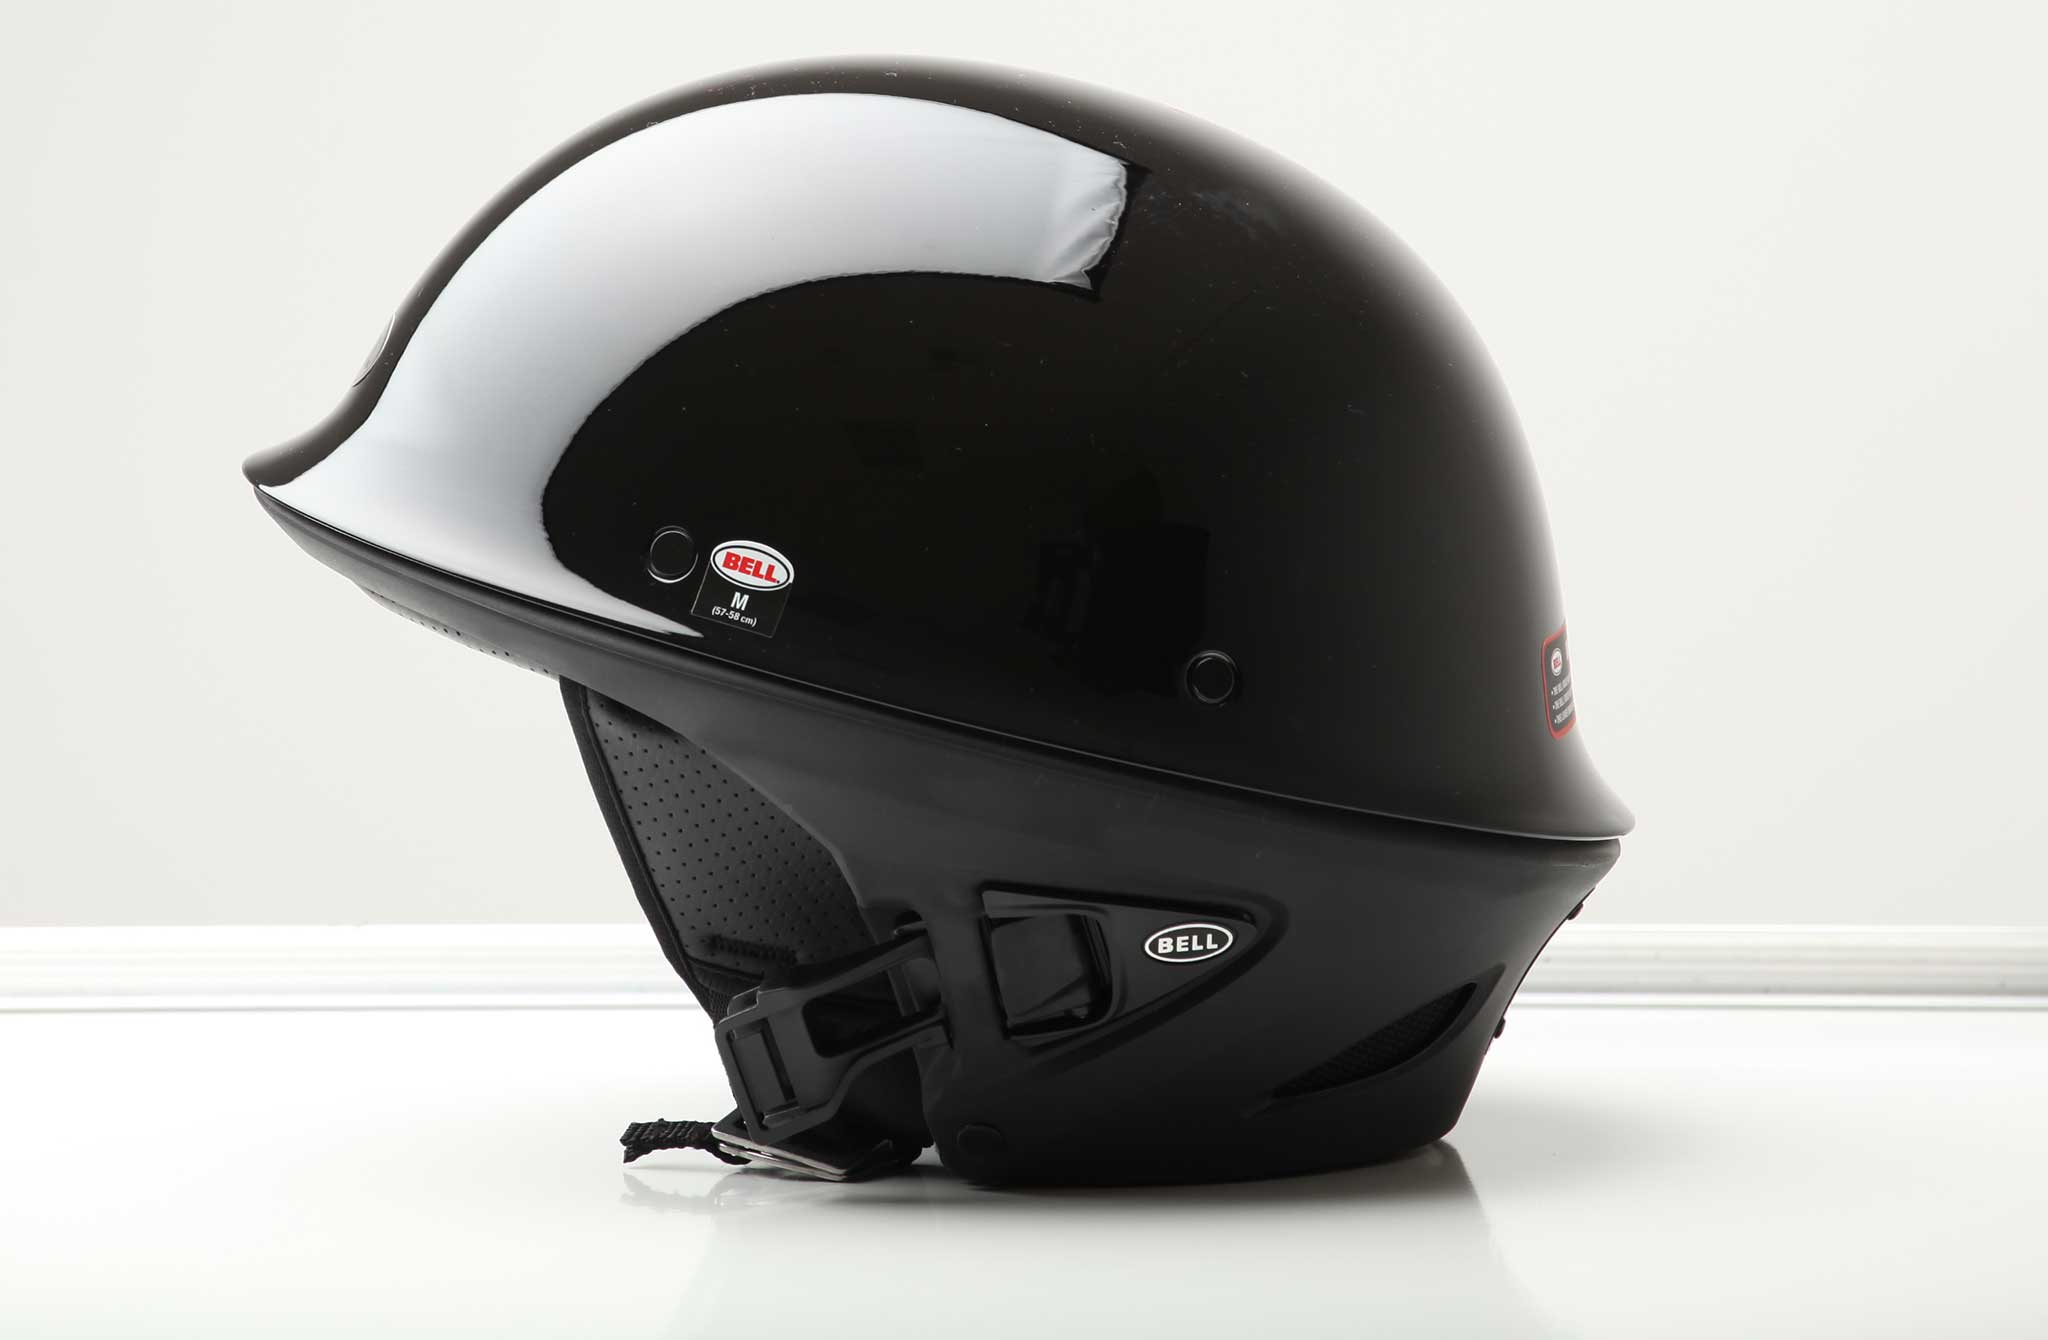 Bell Motorcycle Helmet >> Bell Motorcycle Helmets - Protecting You Since 1954